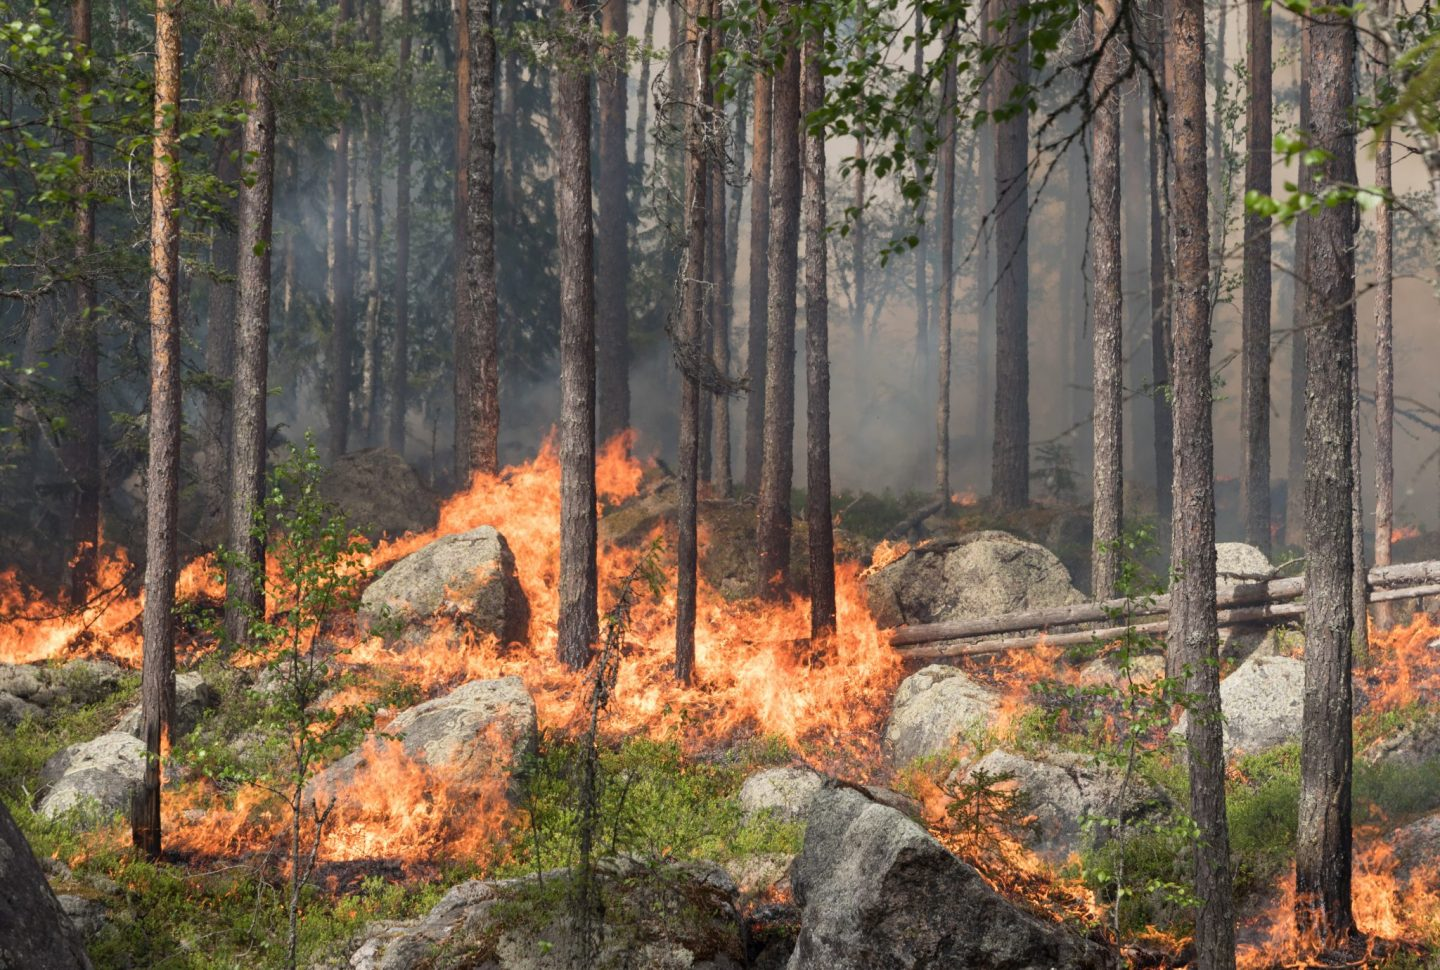 Forest fires in Sweden - huge areas burned in 2018